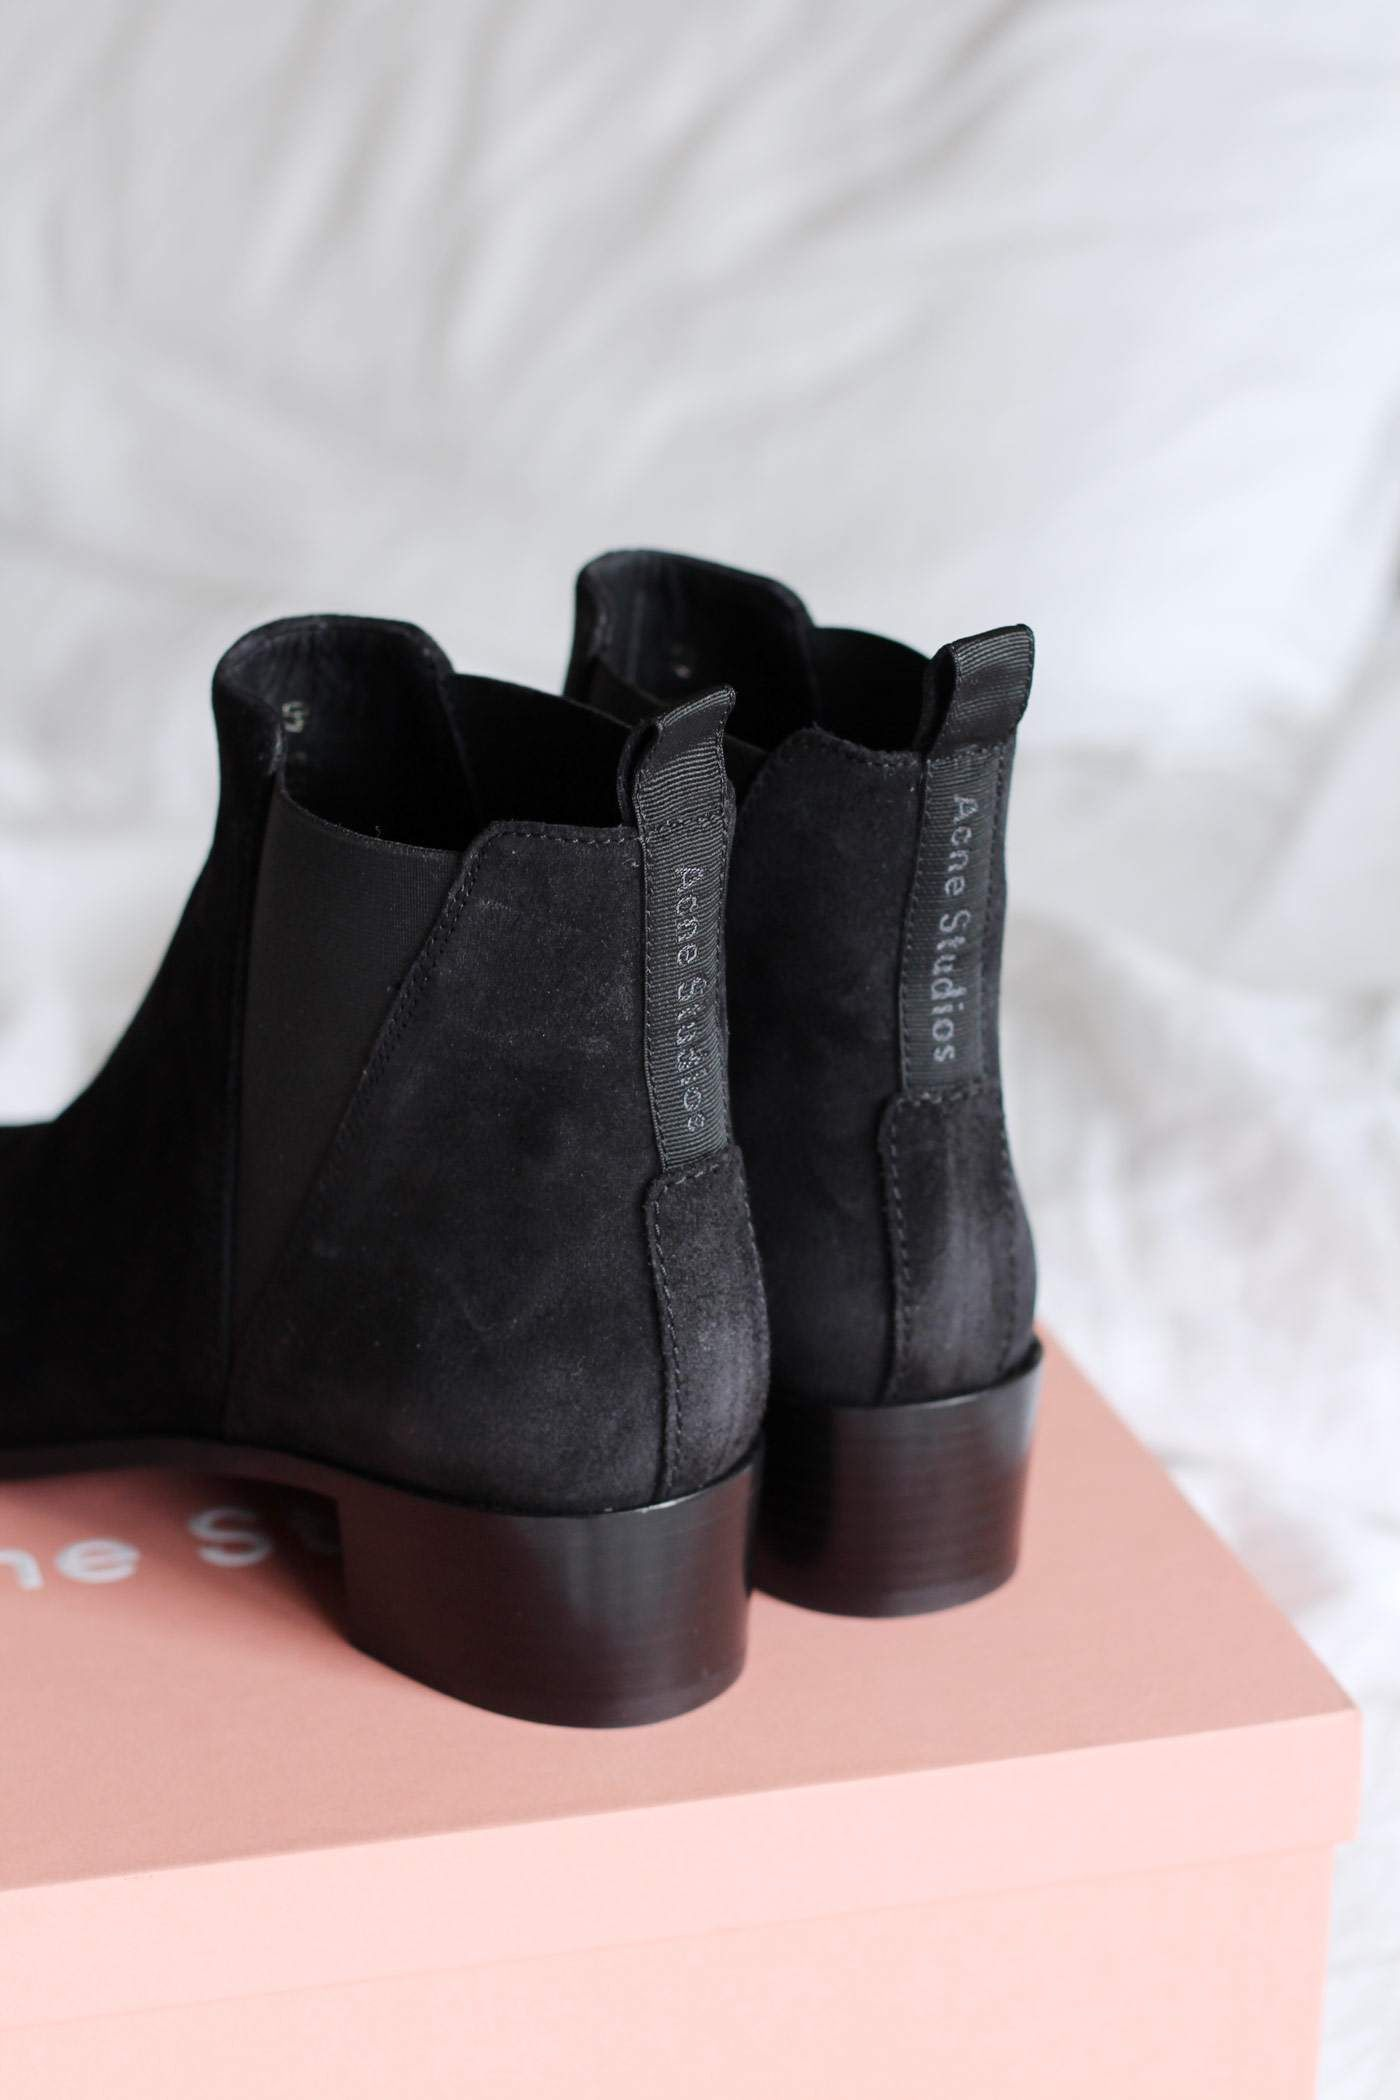 Sale The Cheapest Black Suede Jensen Boots Acne Studios Clearance Browse vMsRo